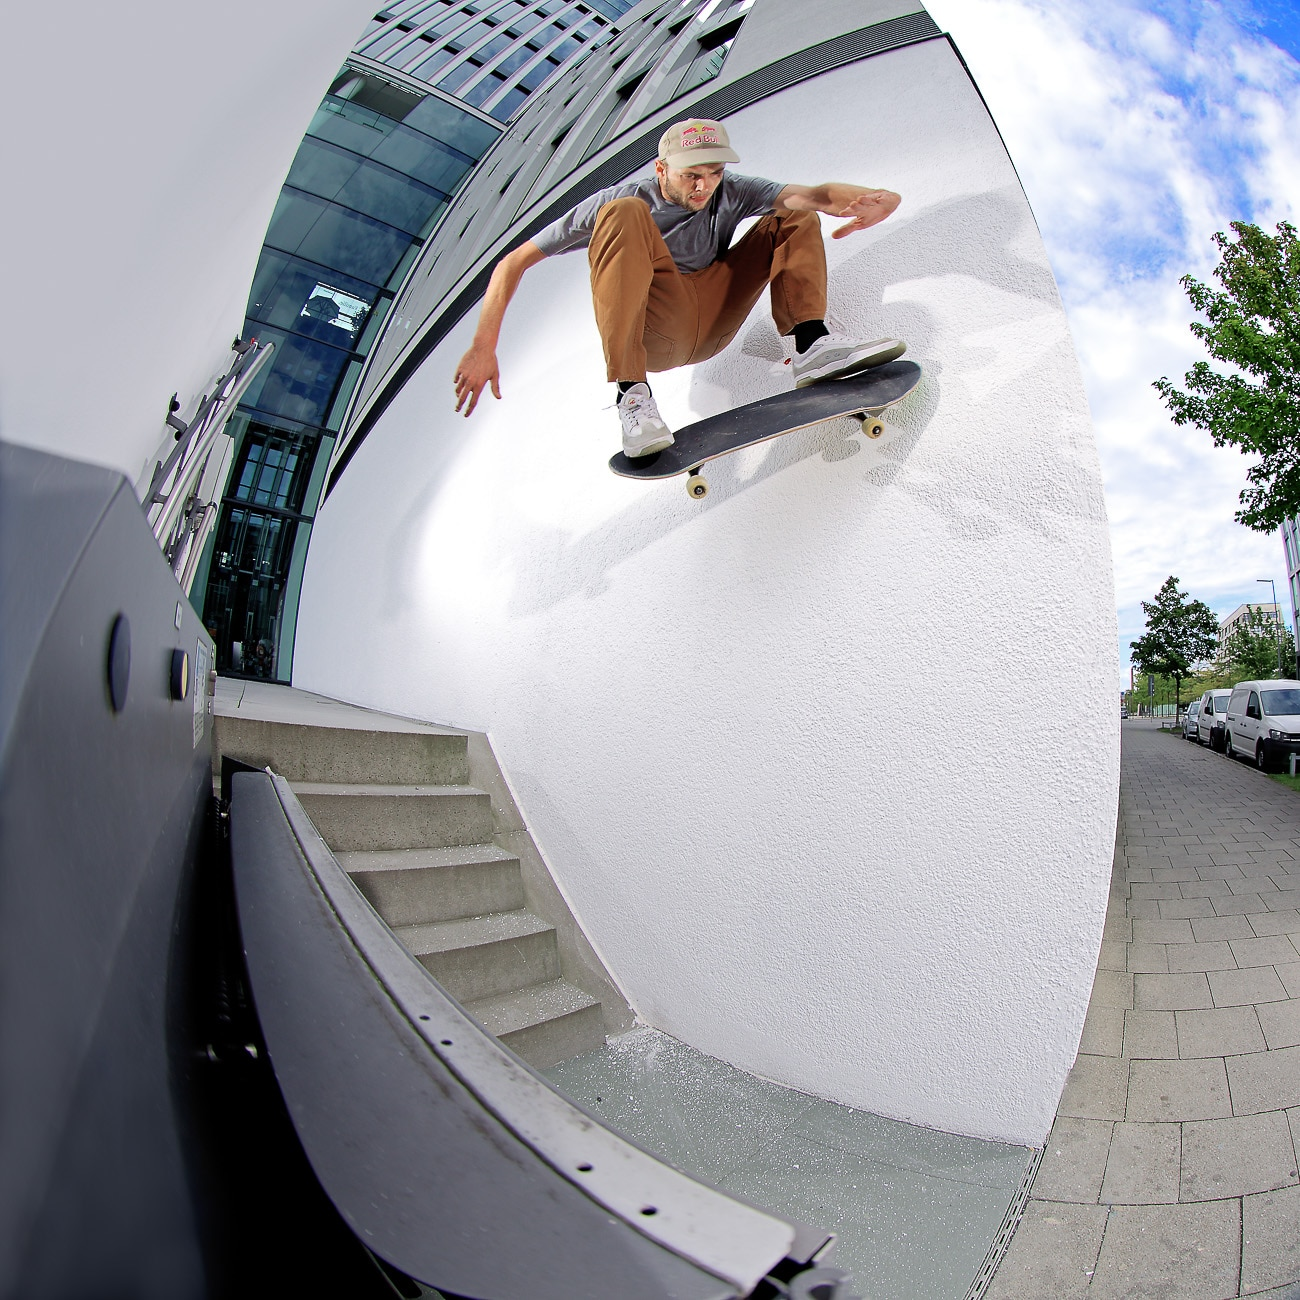 Madars-Apse-Wallride-Nollie-Out_Munich_Gentsch